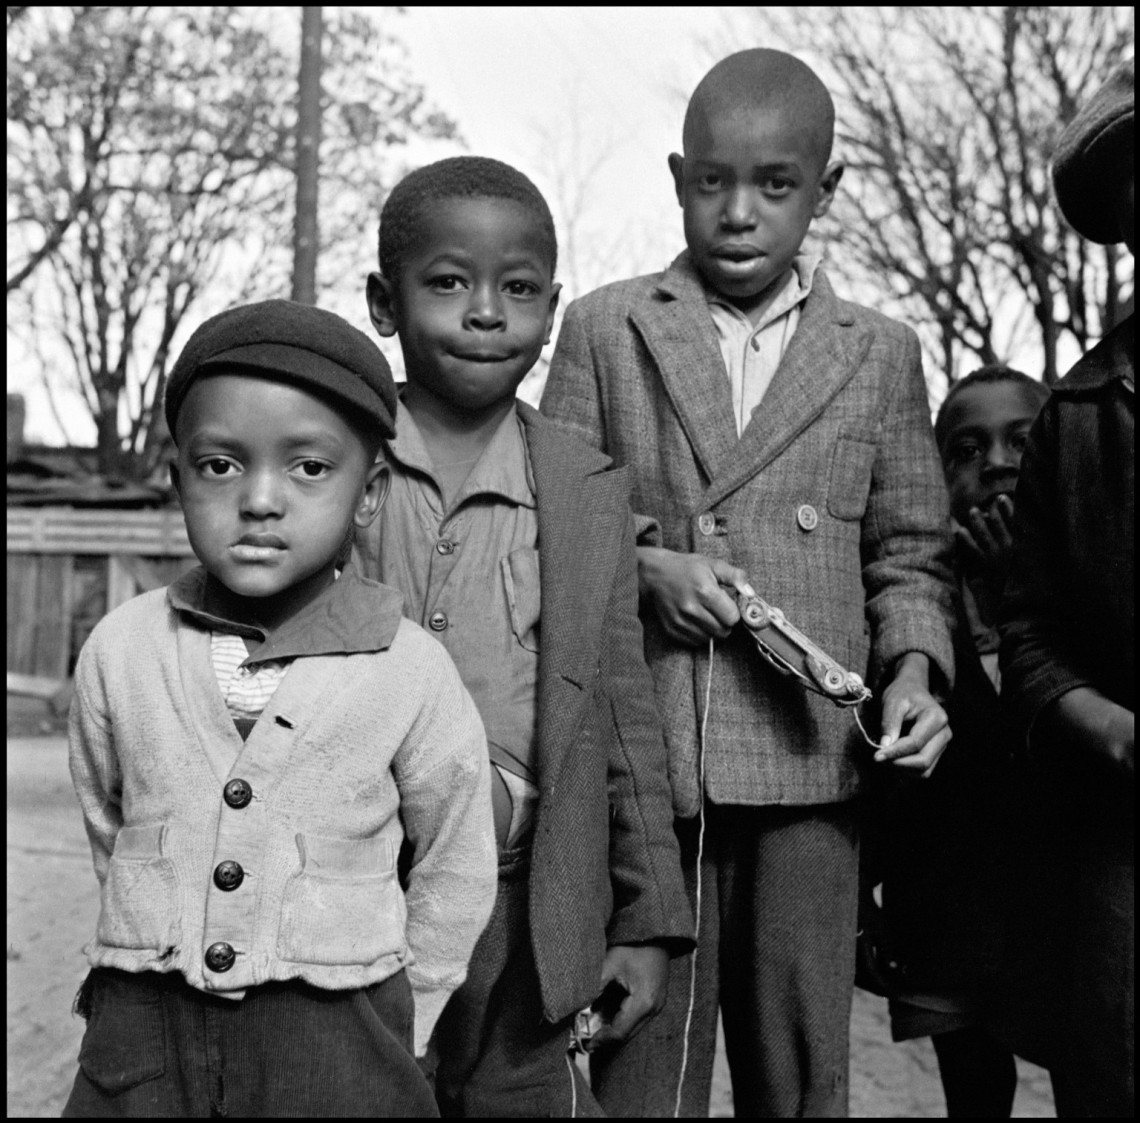 Neighborhood Children 1942